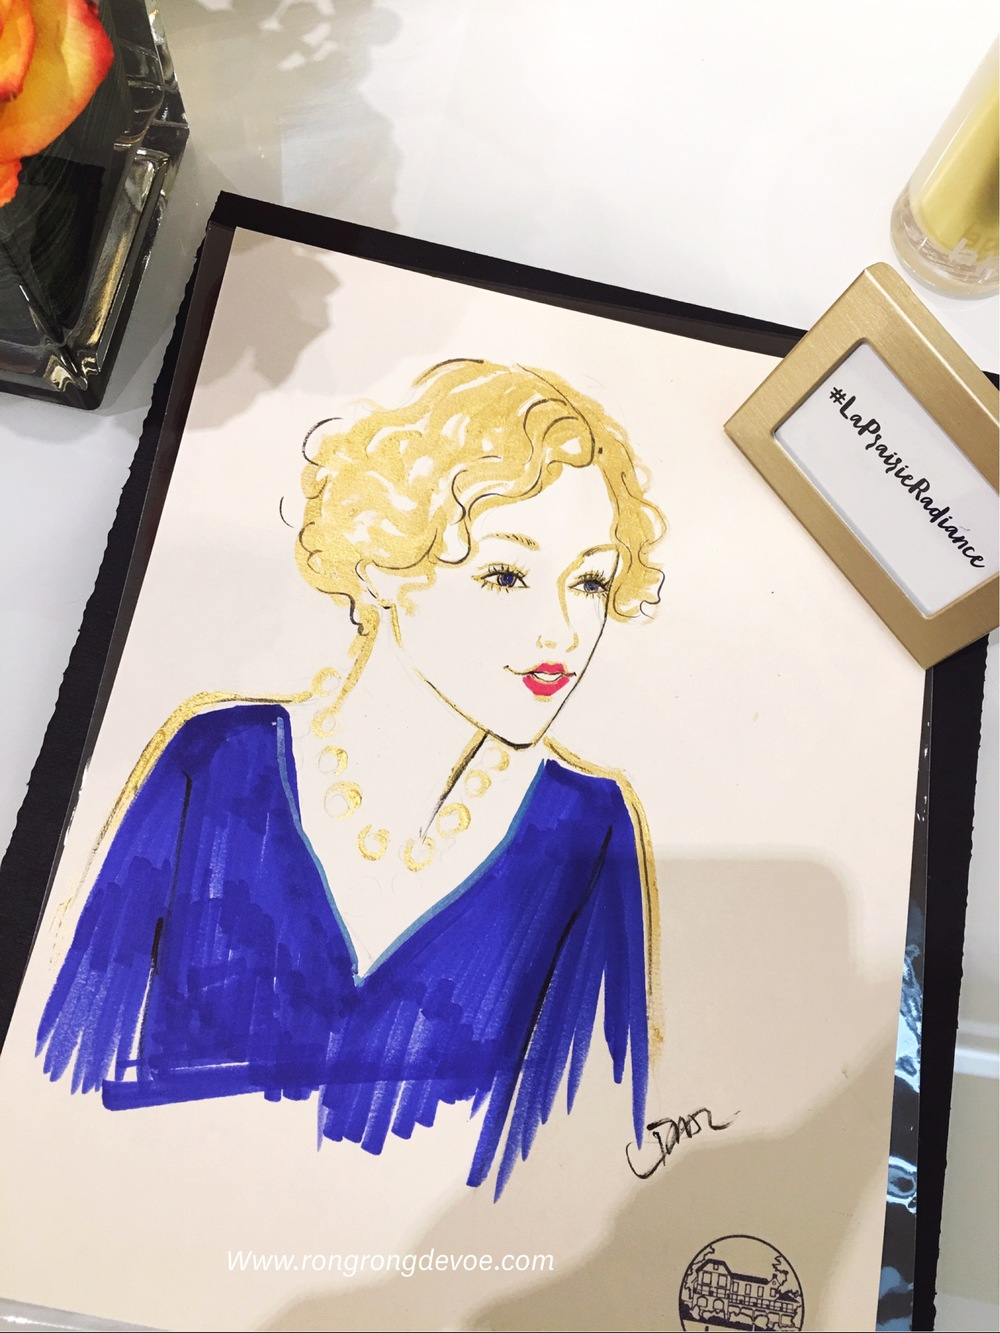 La-Prairie-live-sketch-event-at-Neiman-Marcus-San-Diego-by-fashion-illustrator-Rongrong-DeVoe--2